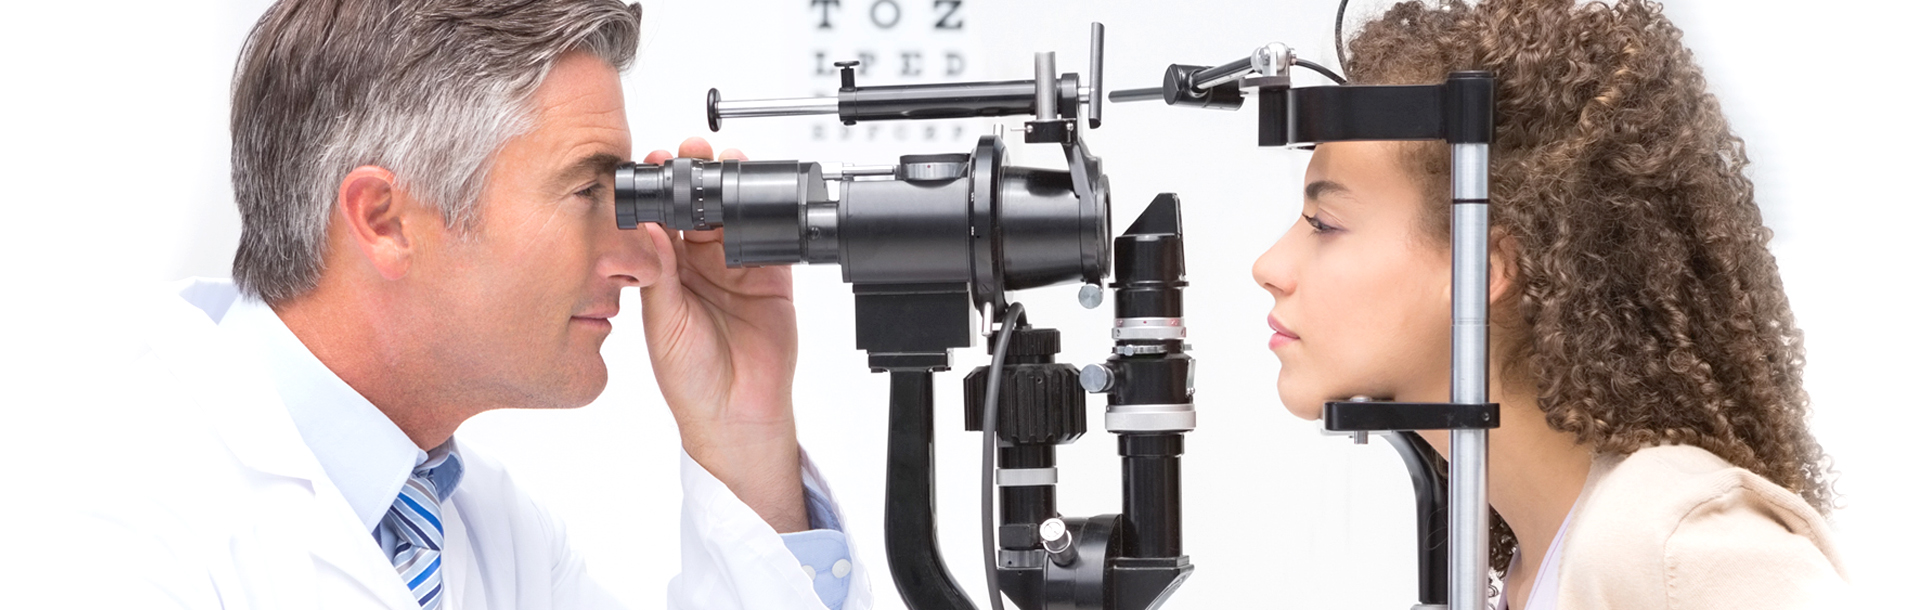 Male doctor viewing female patient's eyes through a slit lamp microscope